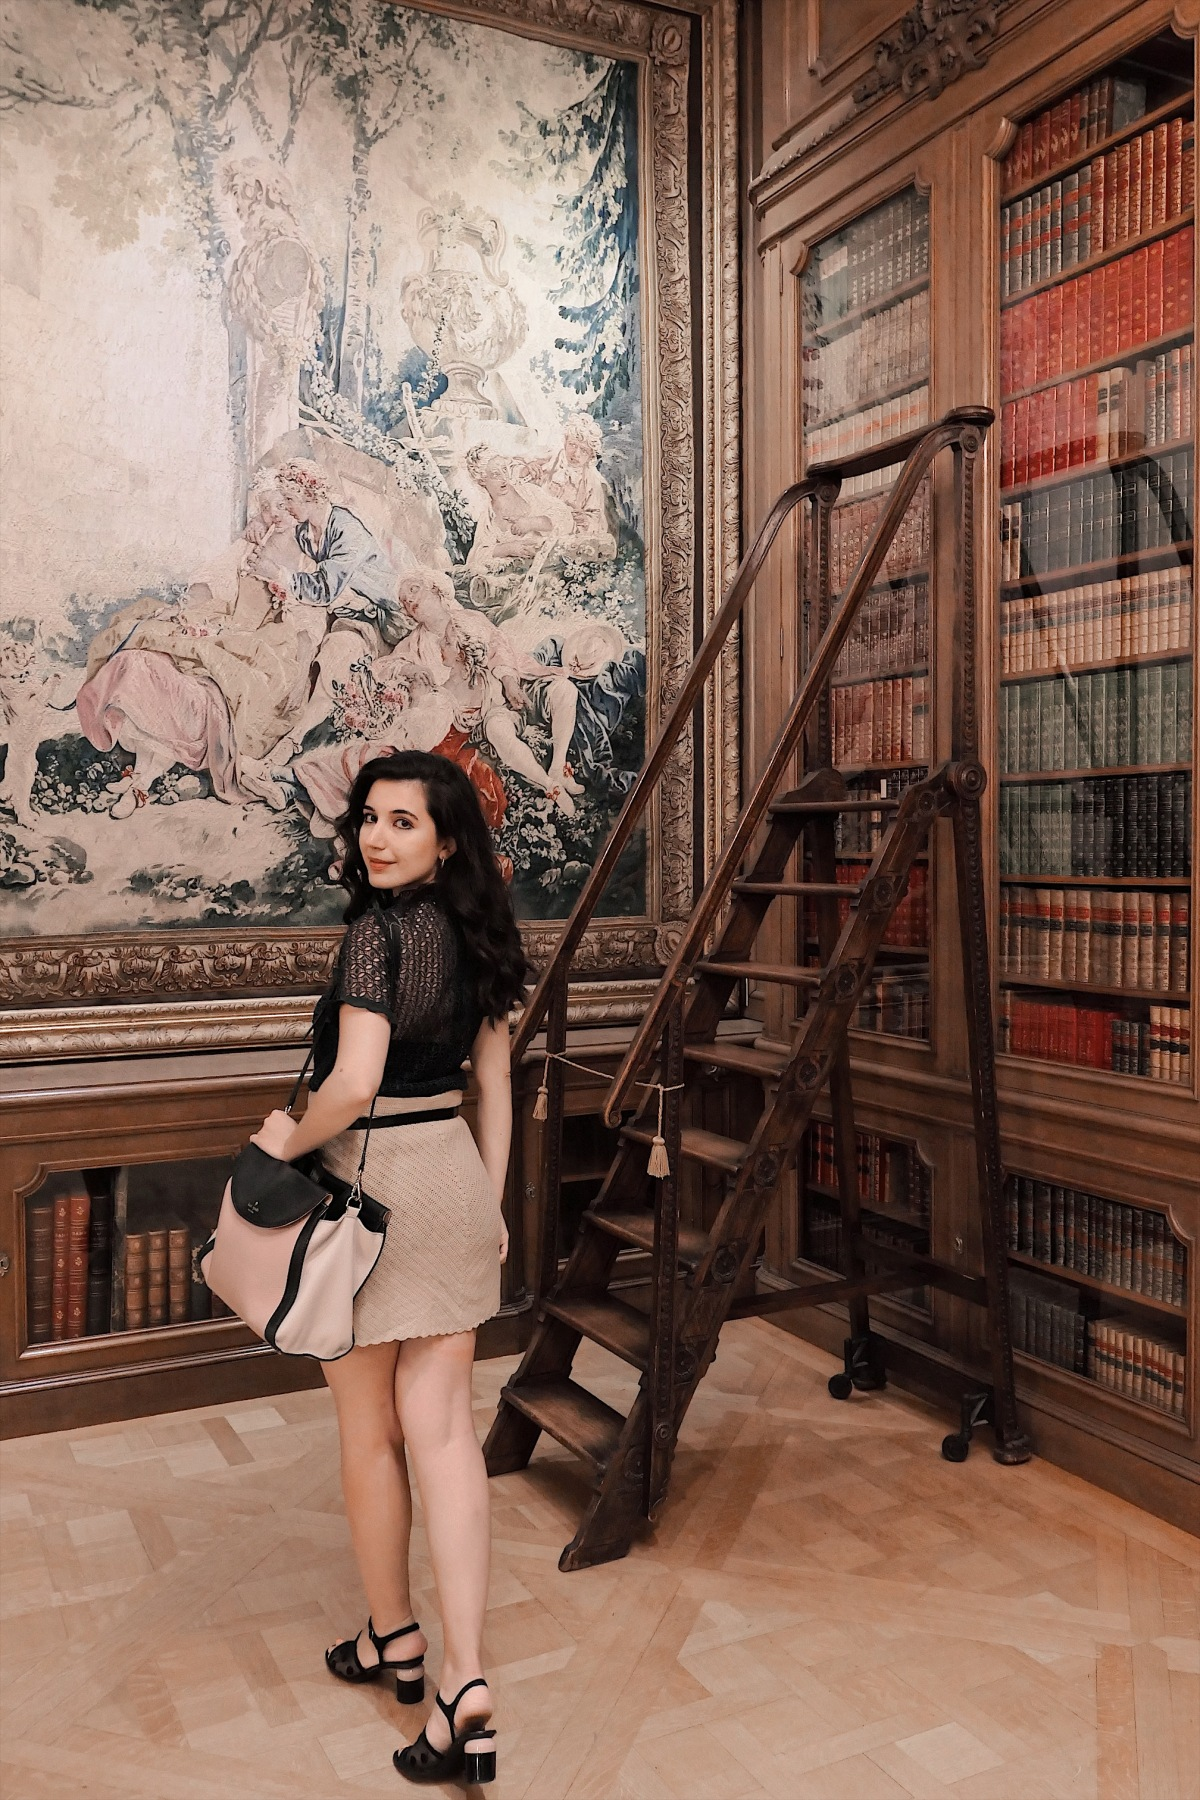 Huntington Library, Huntington Library and Botanical Gardens, lookbook, fashion blogger, lifestyle blogger, art, culture, ootd, Zara, Calvin Klein, lace top, curly hairstyle, girly style, vintage style, summer fashion, summer style, summer 2019 lookbook